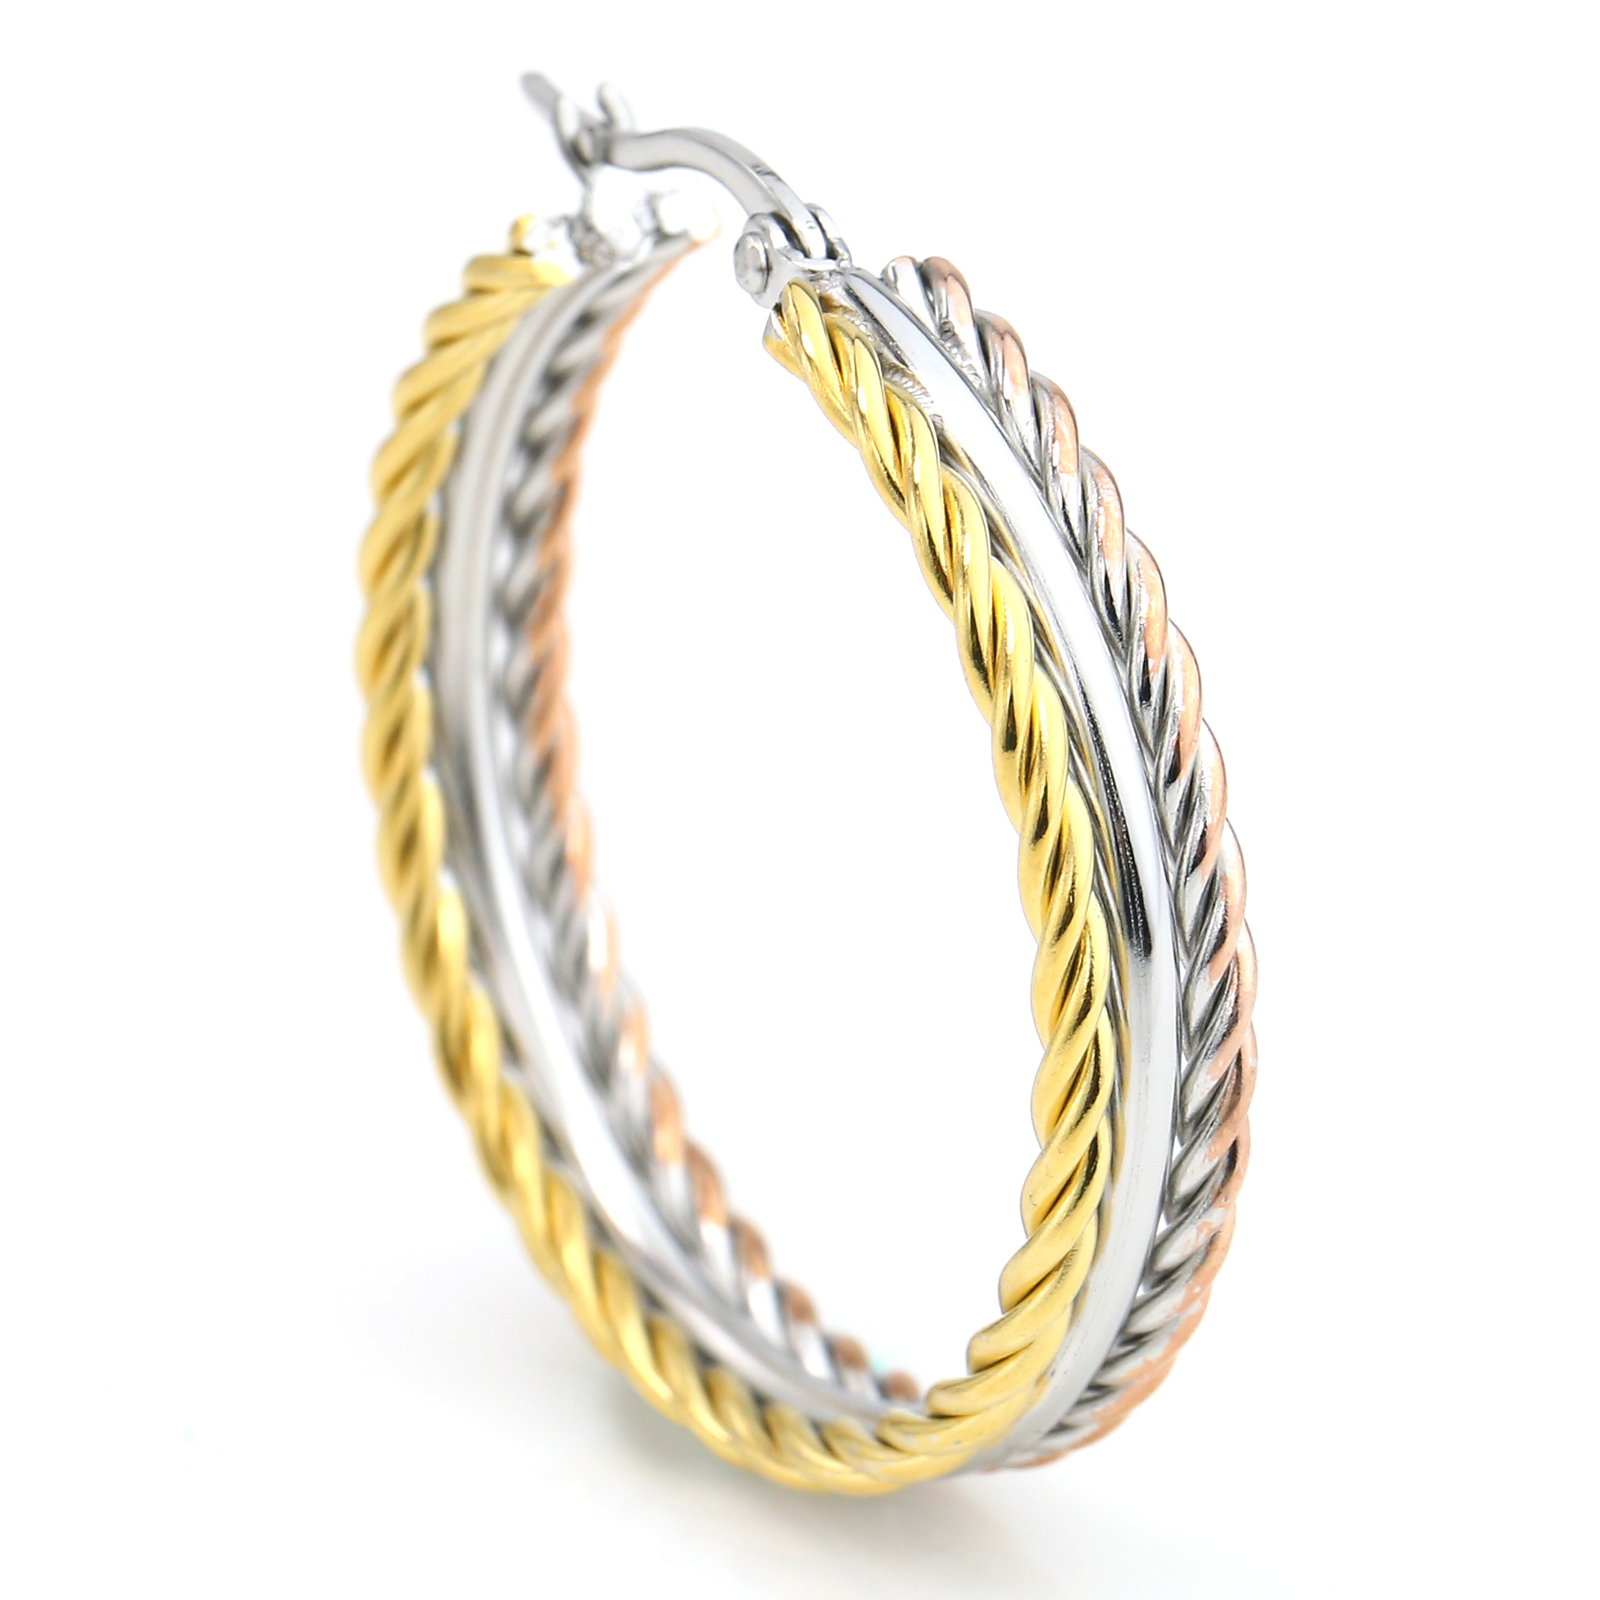 Twisted Edge Tri-Color Silver, Gold & Rose Tone Hoop Earrings- United Elegance